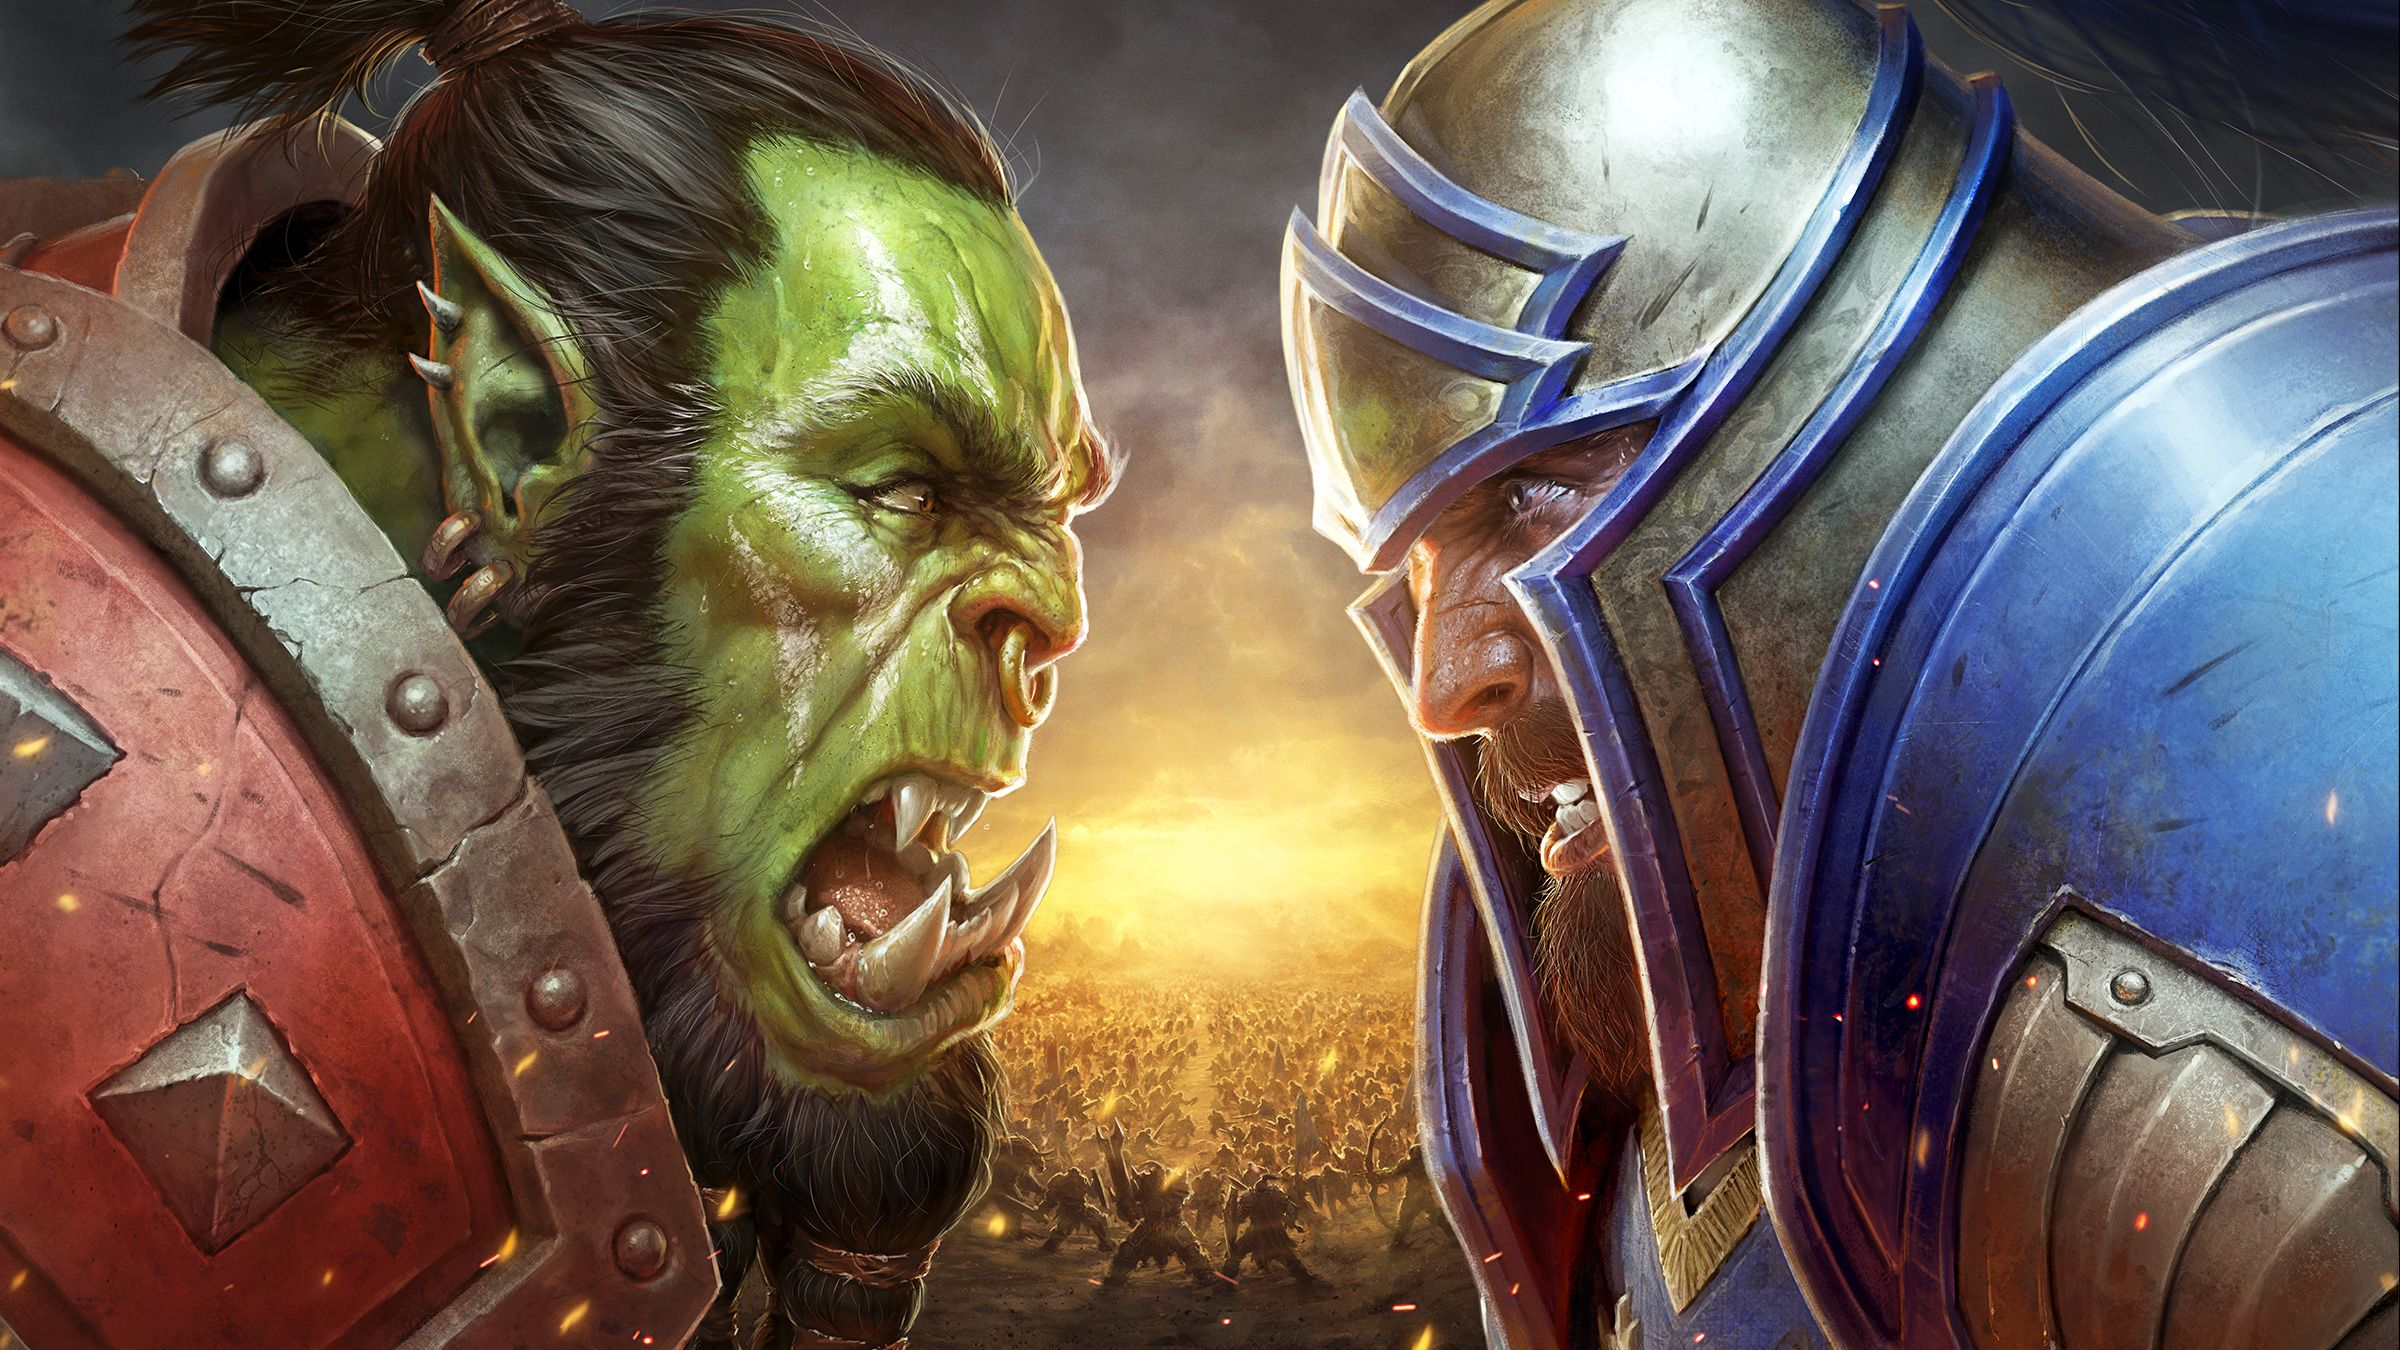 Gästkrönika: Kan Blizzard vända World of Warcraft?